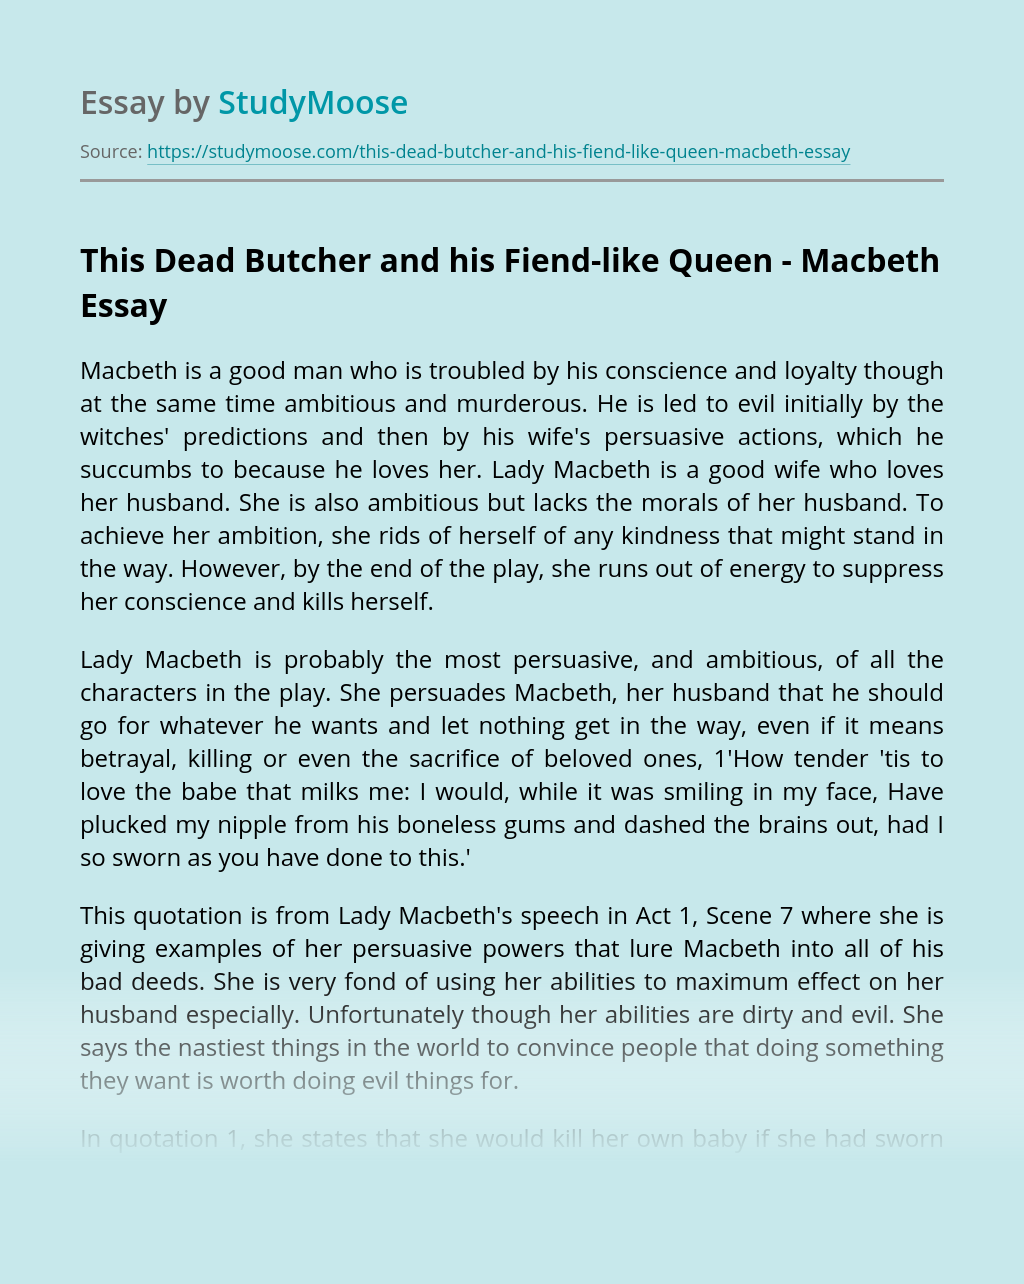 This Dead Butcher and his Fiend-like Queen – Macbeth